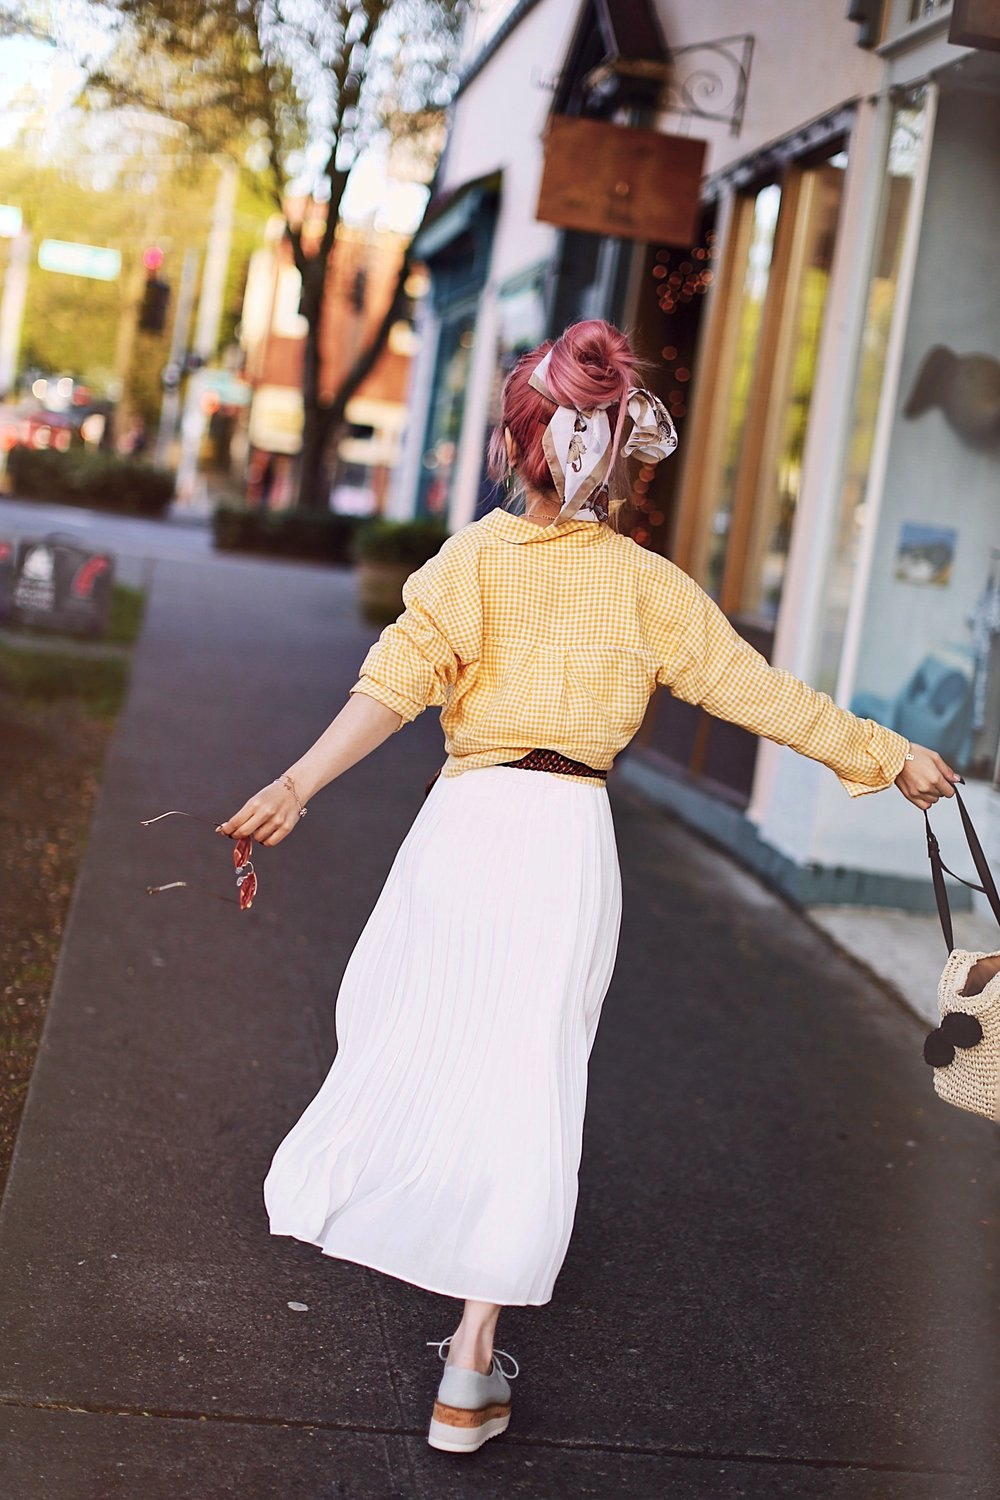 Uniqlo yellow Linen gingham shirt-Uniqlo White pleated chiffon midi skirt-Uniqlo Airism brat-pink tinted sunglasses ZERO UV-She in Pom pom Straw bucket bag-Vintage scarf bun hair style-Steve Madden Belt-Jane and the shoe denim oxford platforms-Aika's Love Closet-seattle fashion style blogger-Japanese-pink hair-smiling-spring fashion 20